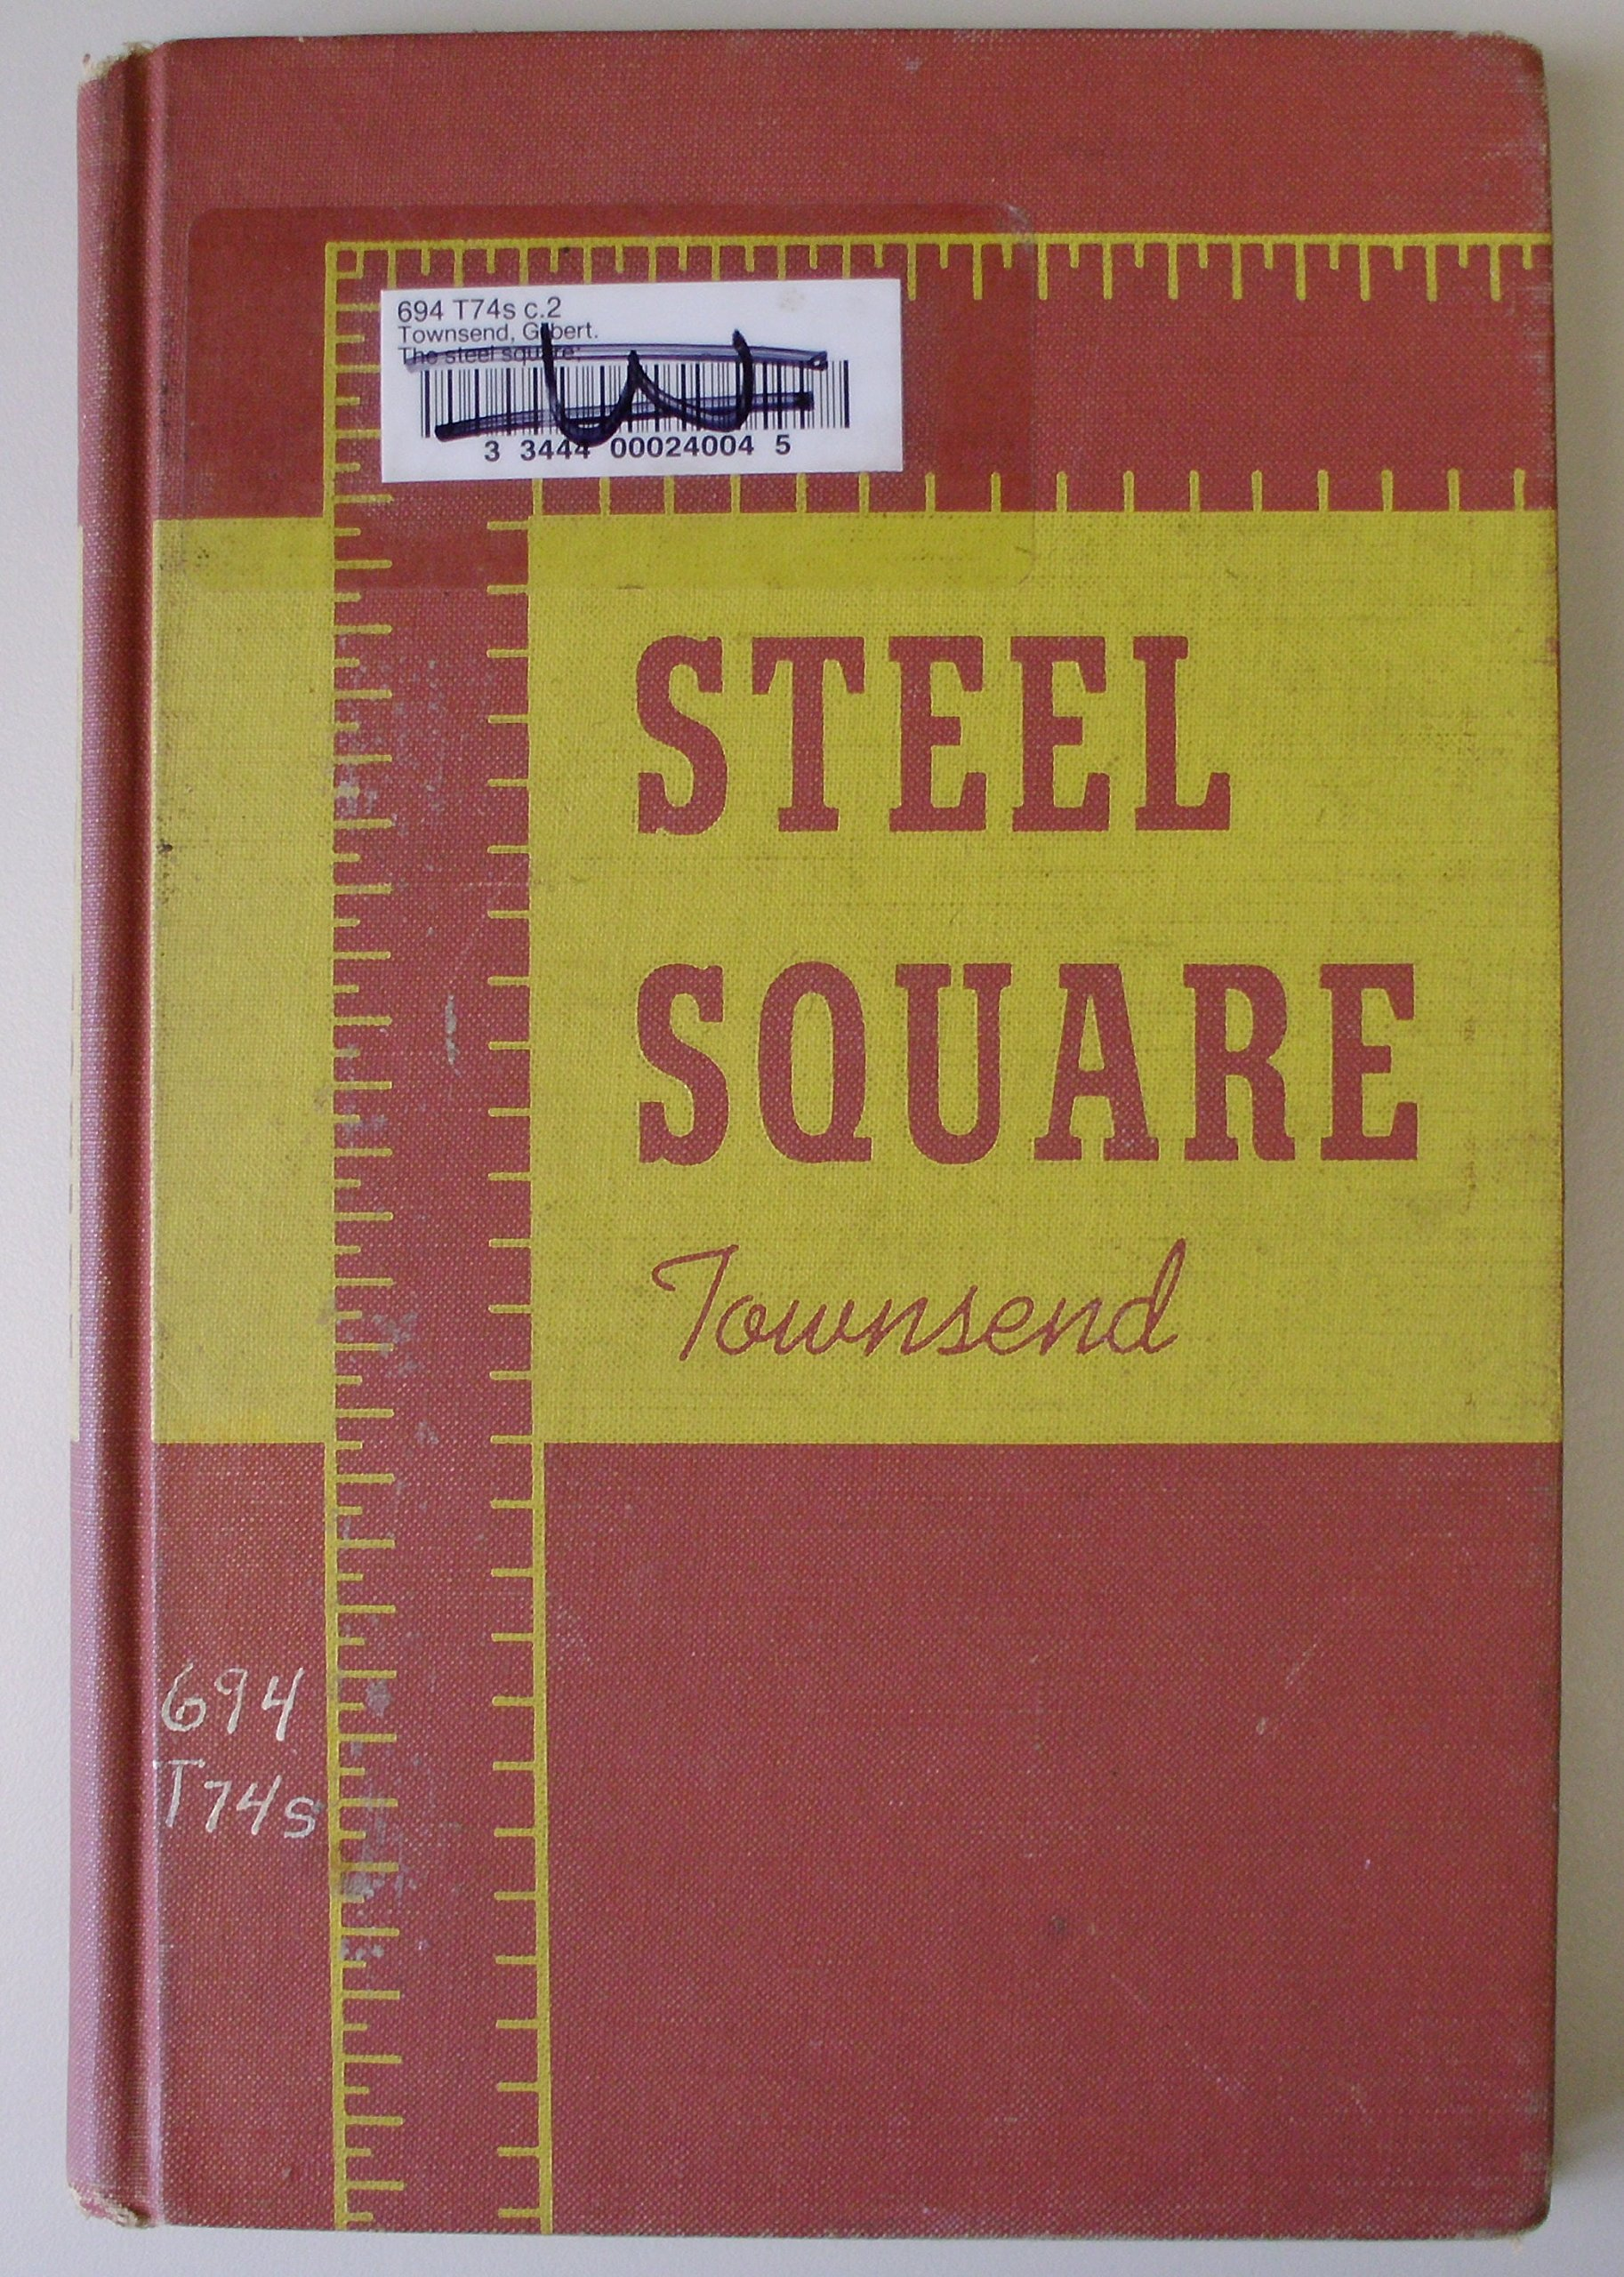 STEEL SQUARE; USE OF THE SCALES ROOF FRAMING ILLUSTRATIVE PROBLEMS OTHER USES